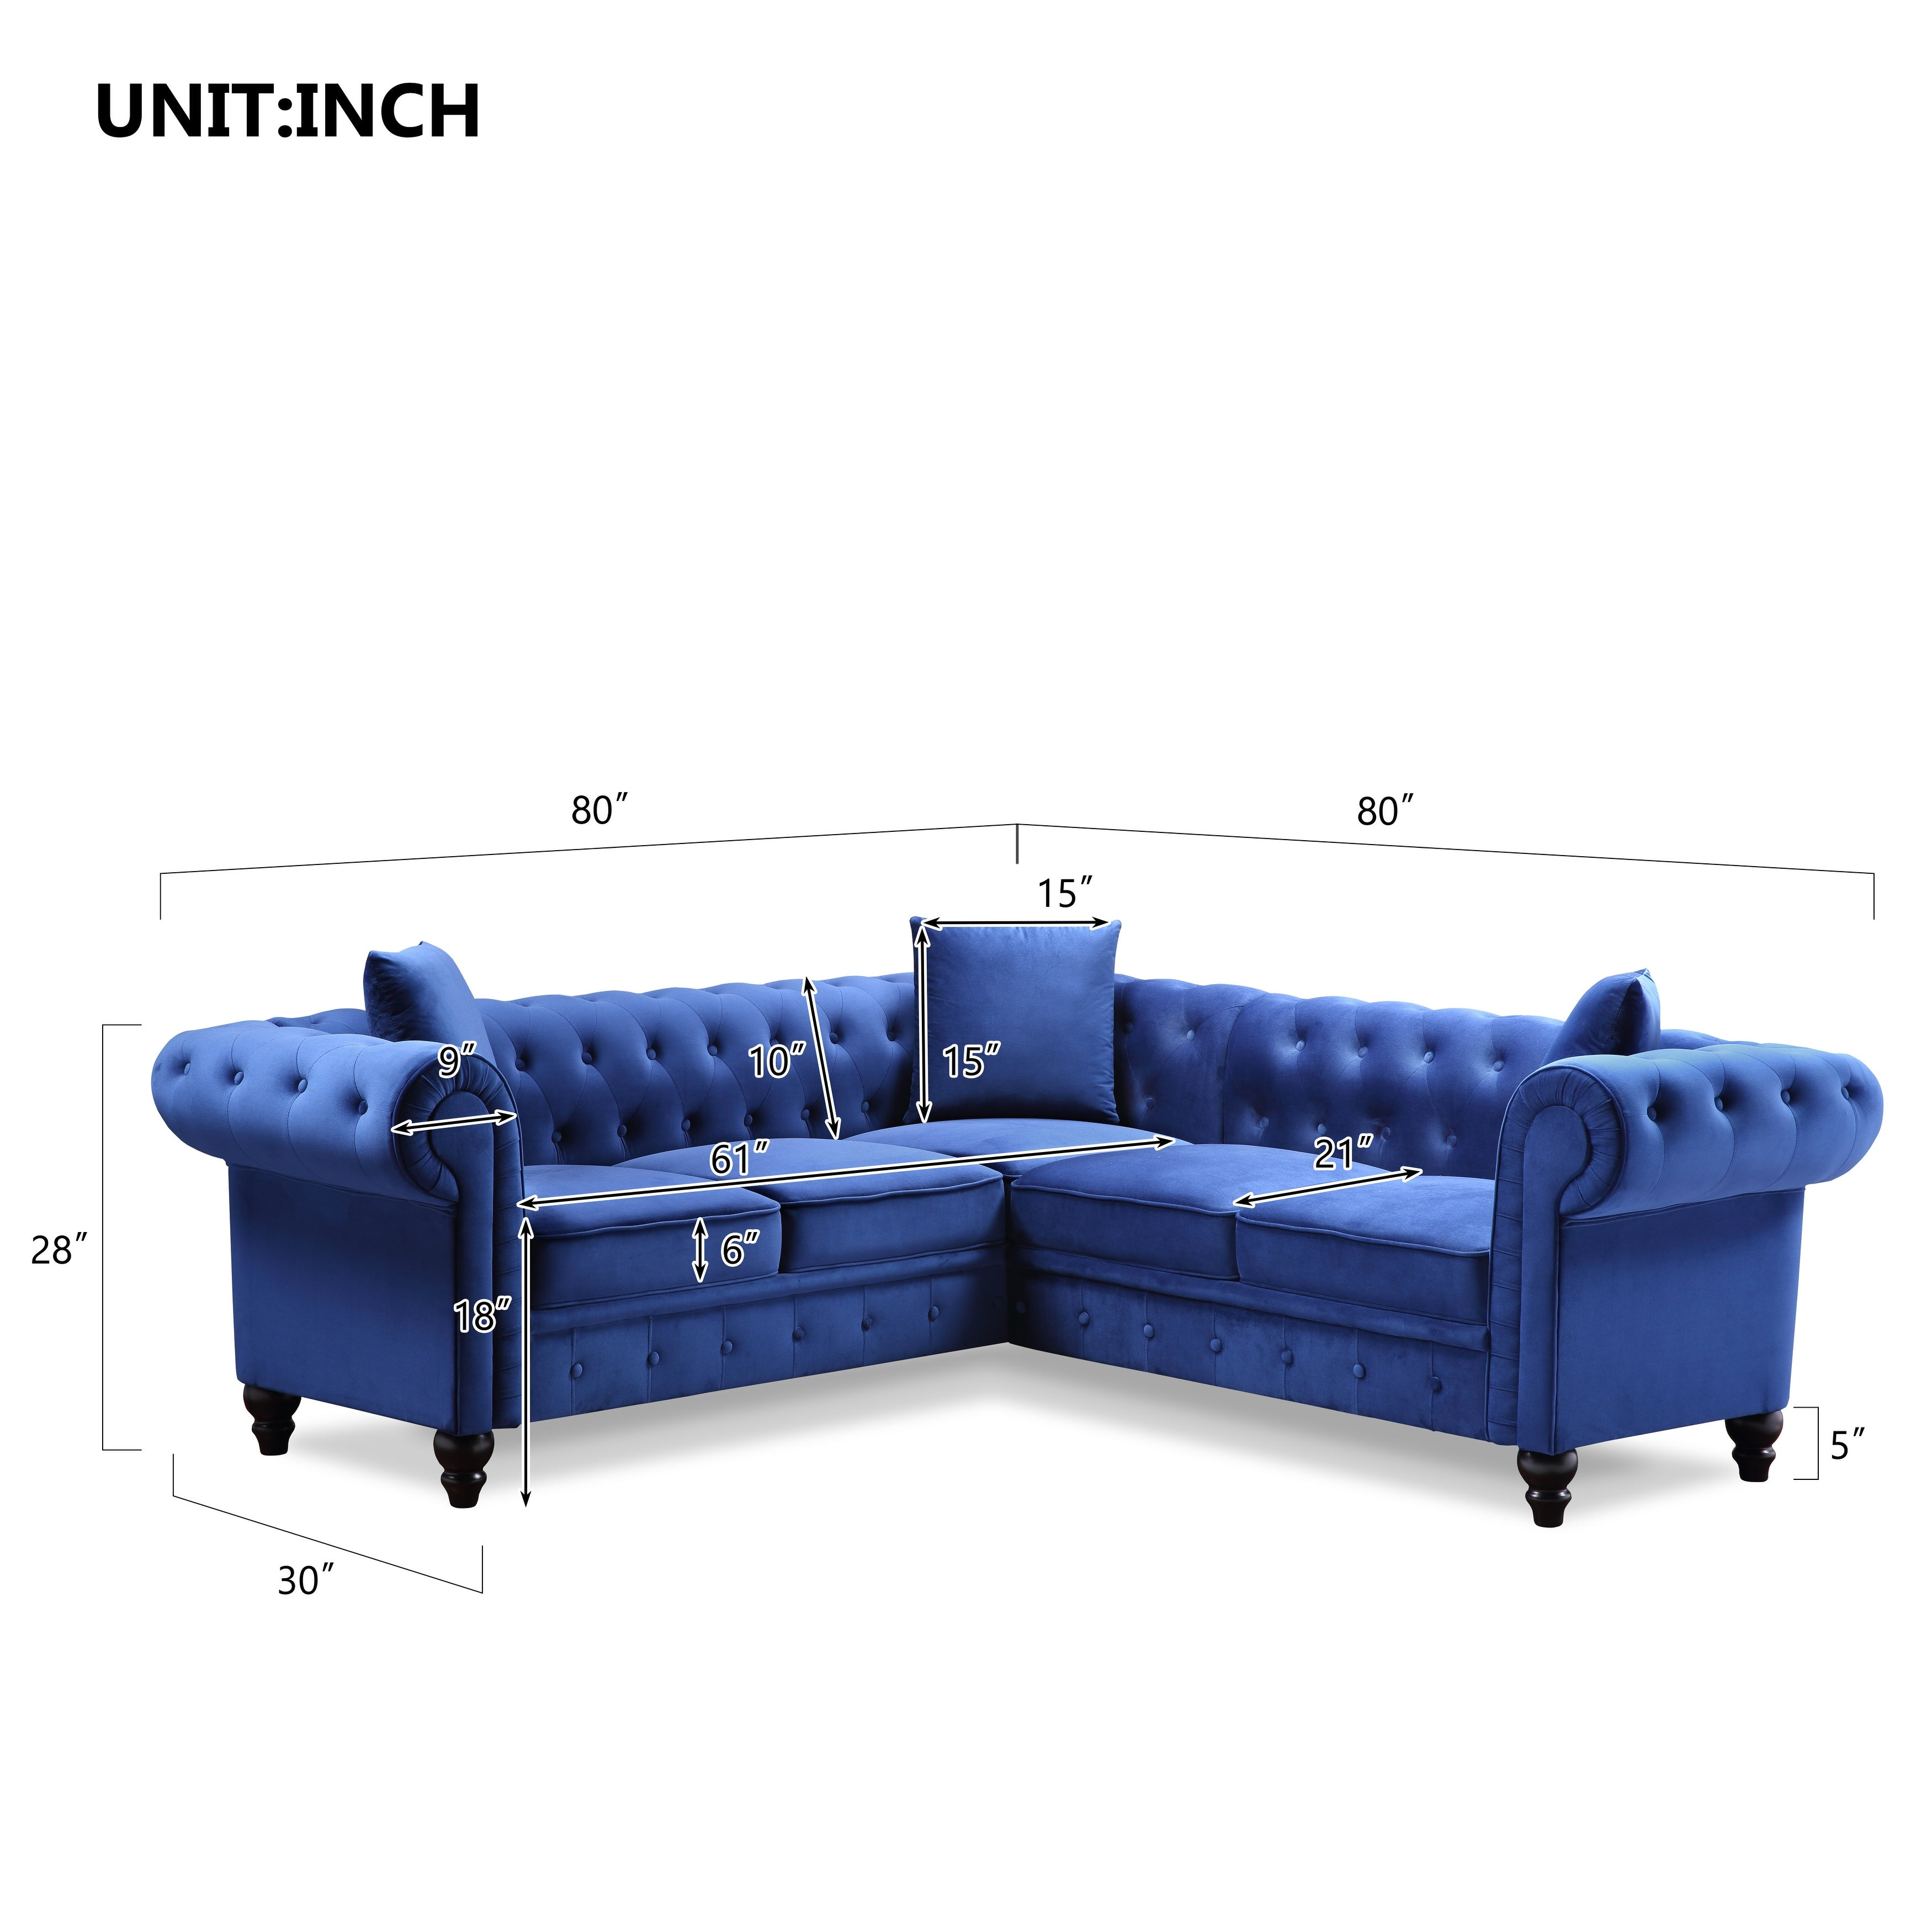 Shop For Tufted Velvet Upholstered Rolled Arm Classic Chesterfield Sectional Sofa With 3 Pillows Get Free Shipping On Everything At Overstock Your Online Furniture Outlet Store Get 5 In Rewards With Club O 32321857